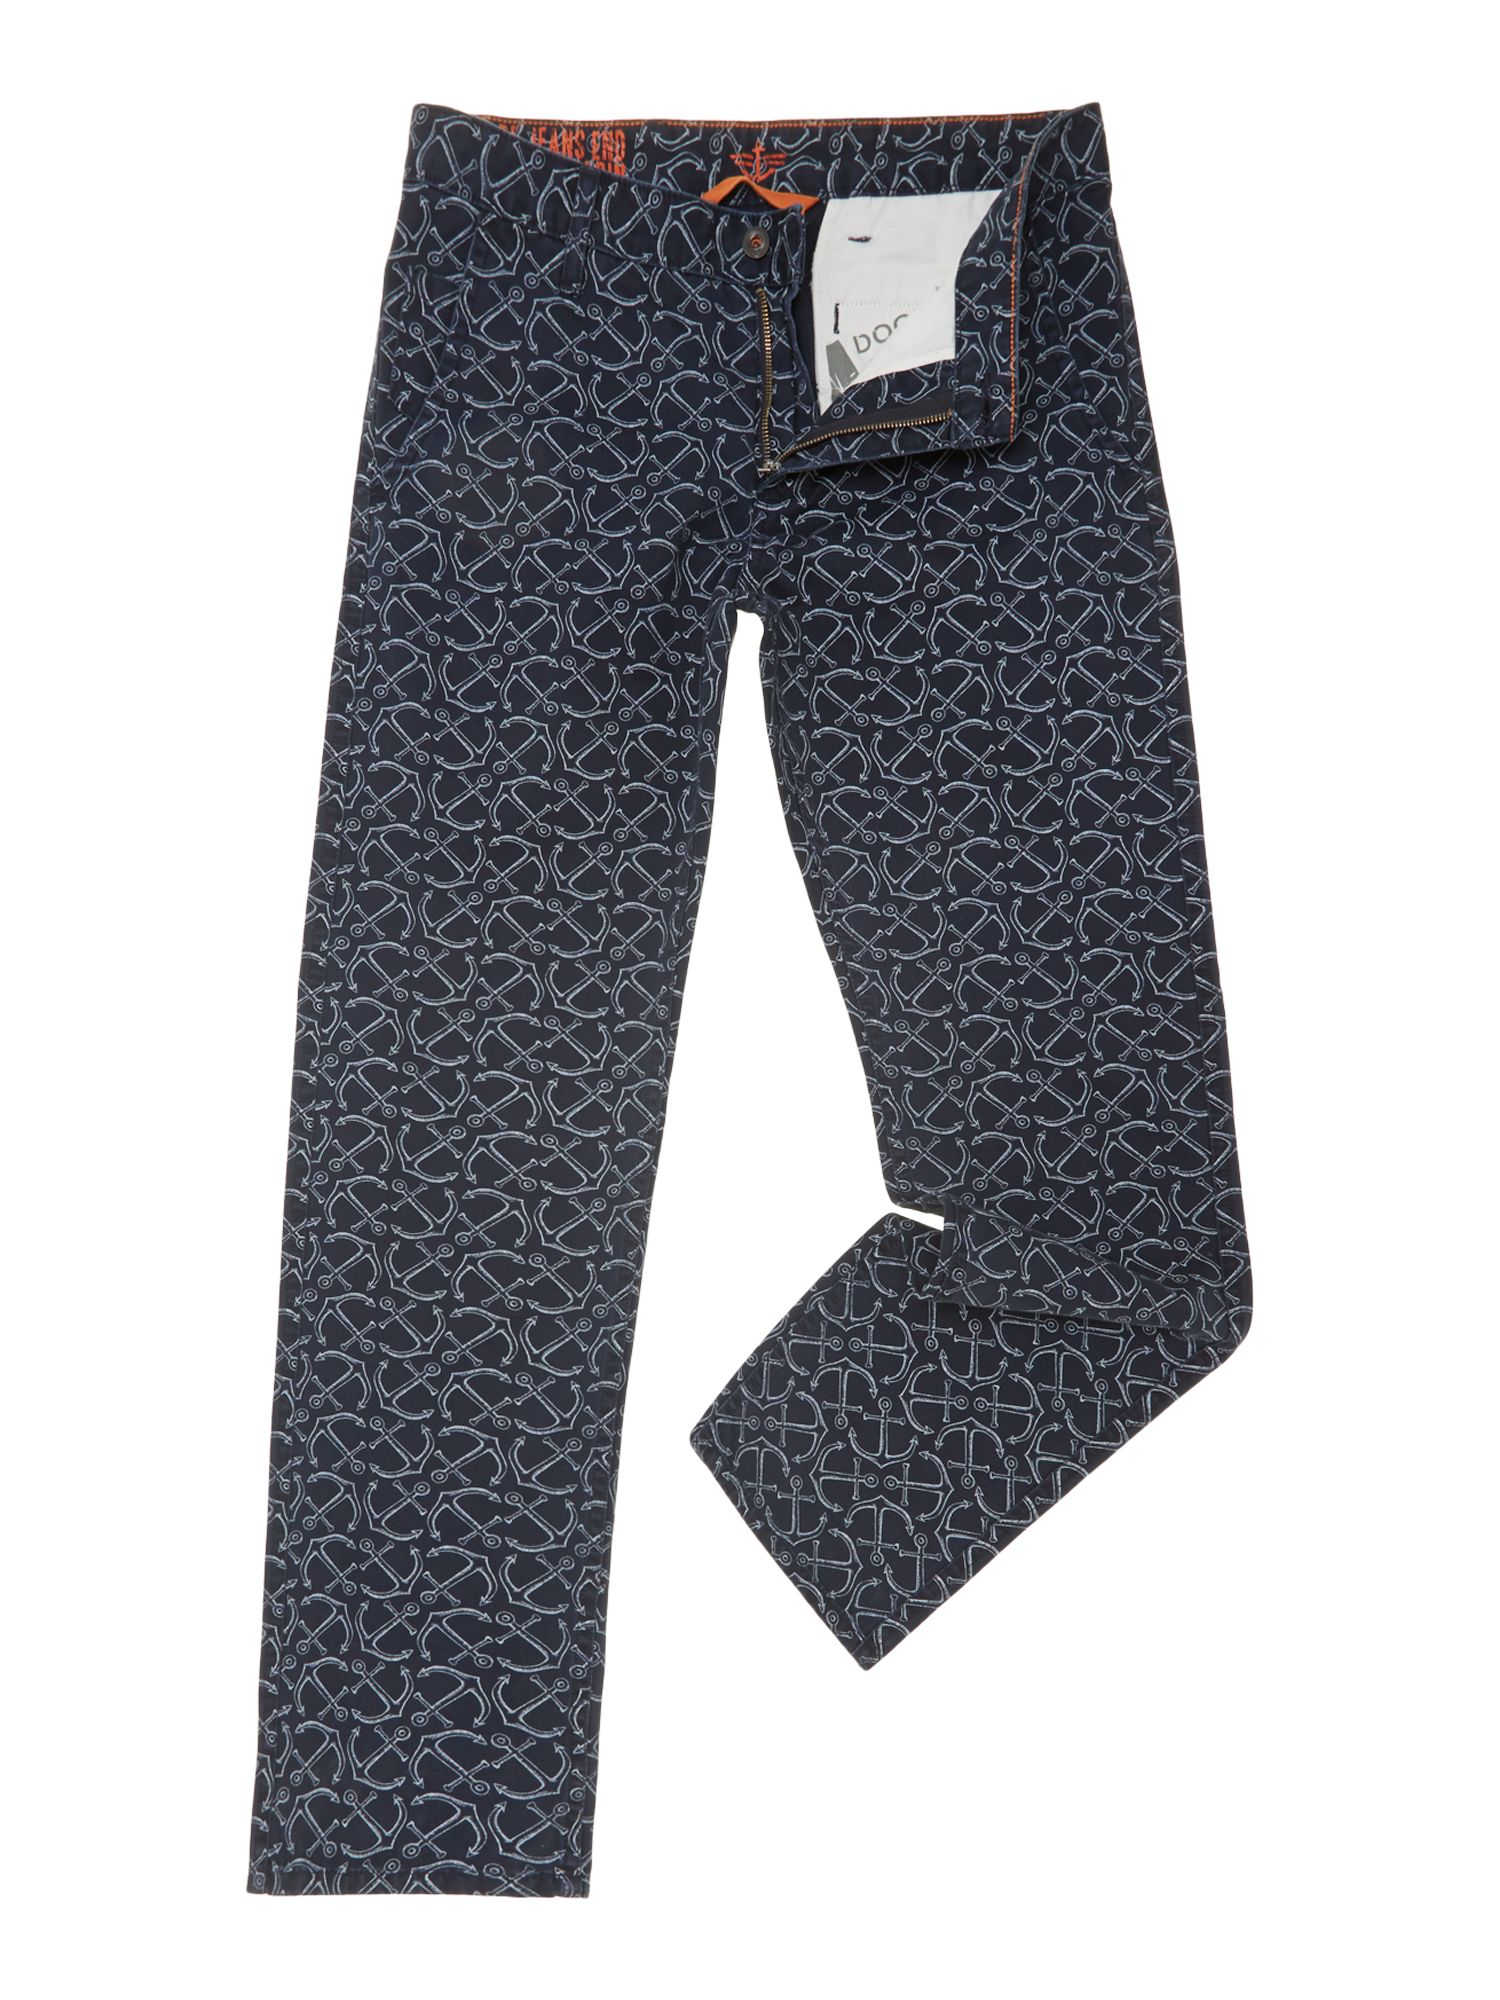 Alpha khaki anchor print slim chino